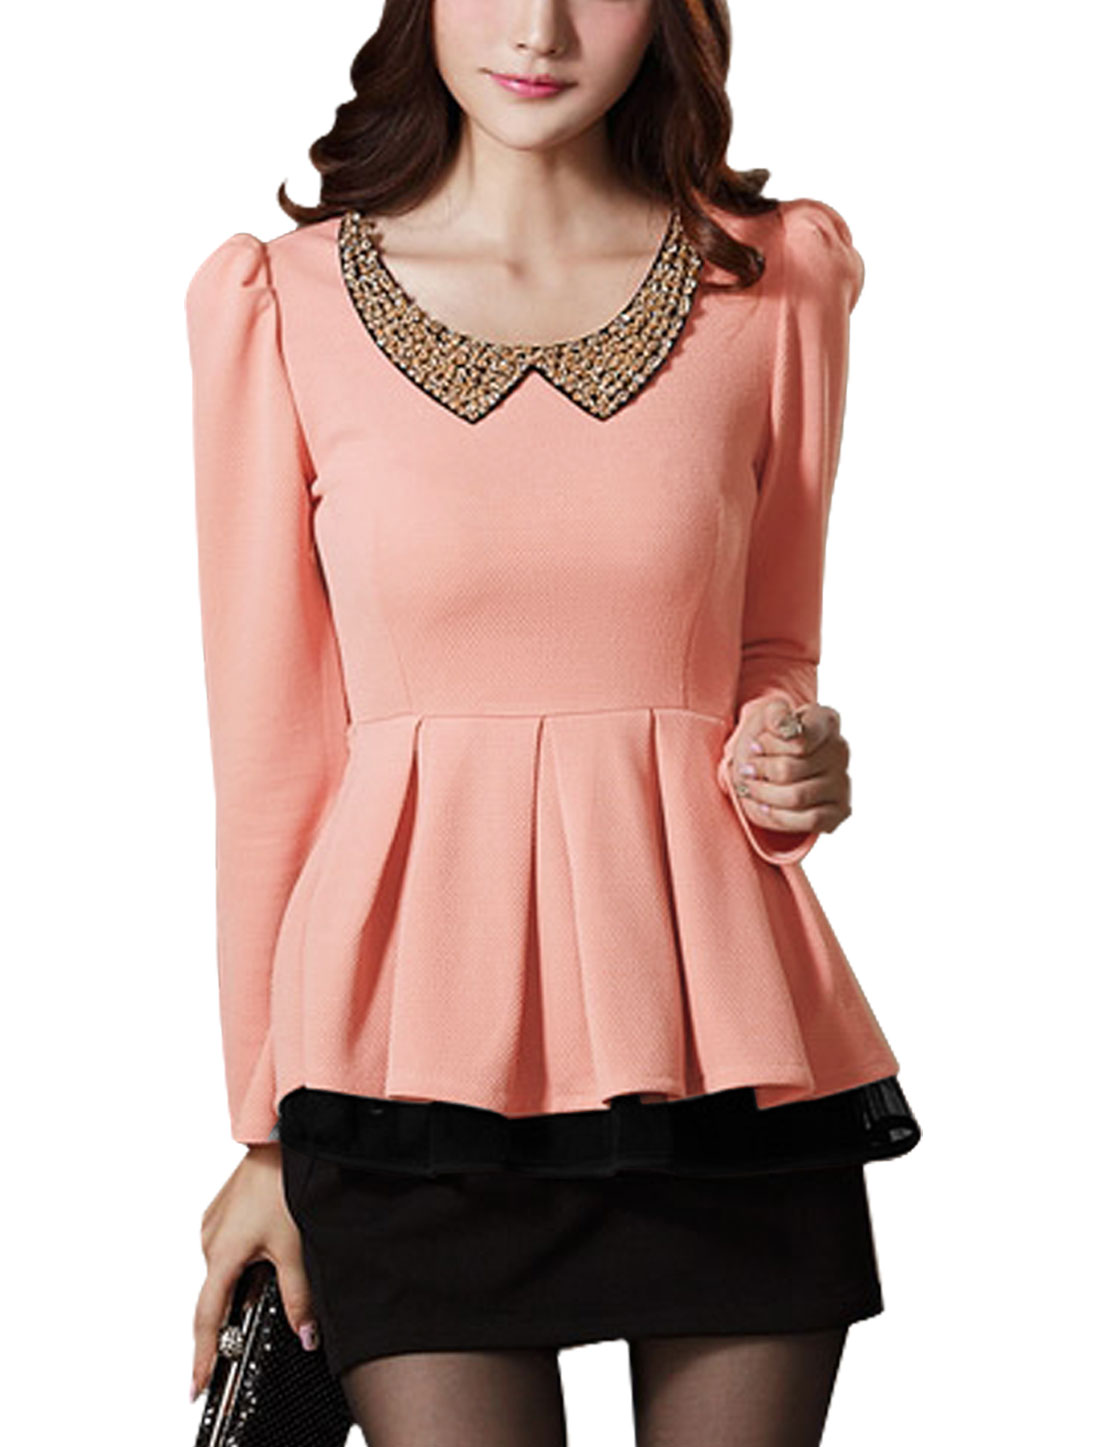 Lady Padded Shoulder Long Sleeve Fake Crystal Decor Peplum Top Pink M